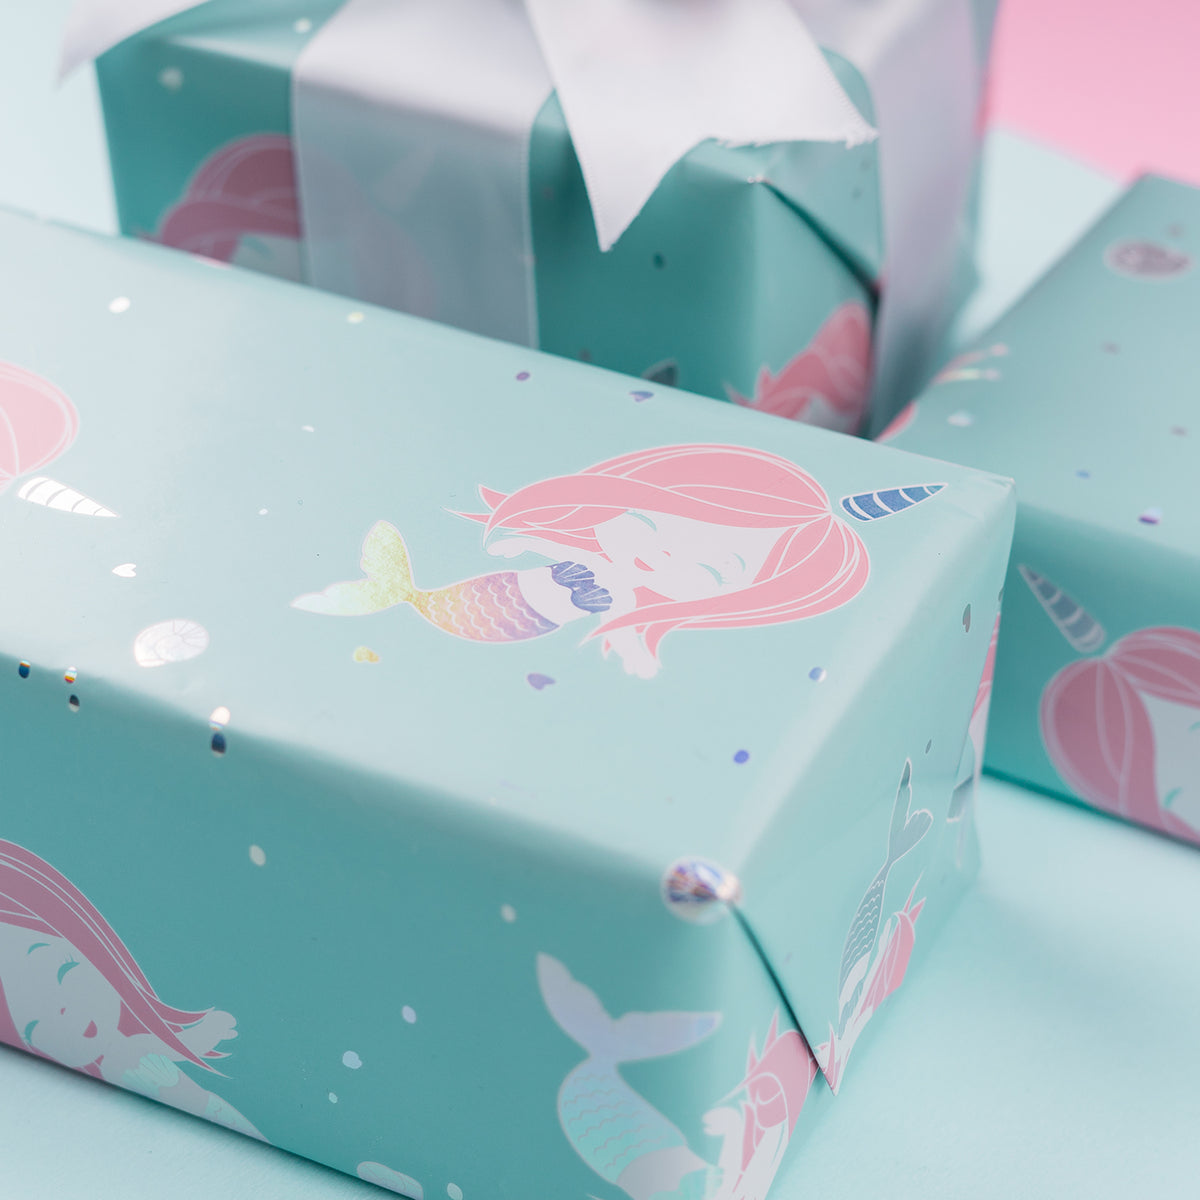 Wrapaholic-Cute- Mermaid-Design-Gift-Wrapping-Paper-Roll-6